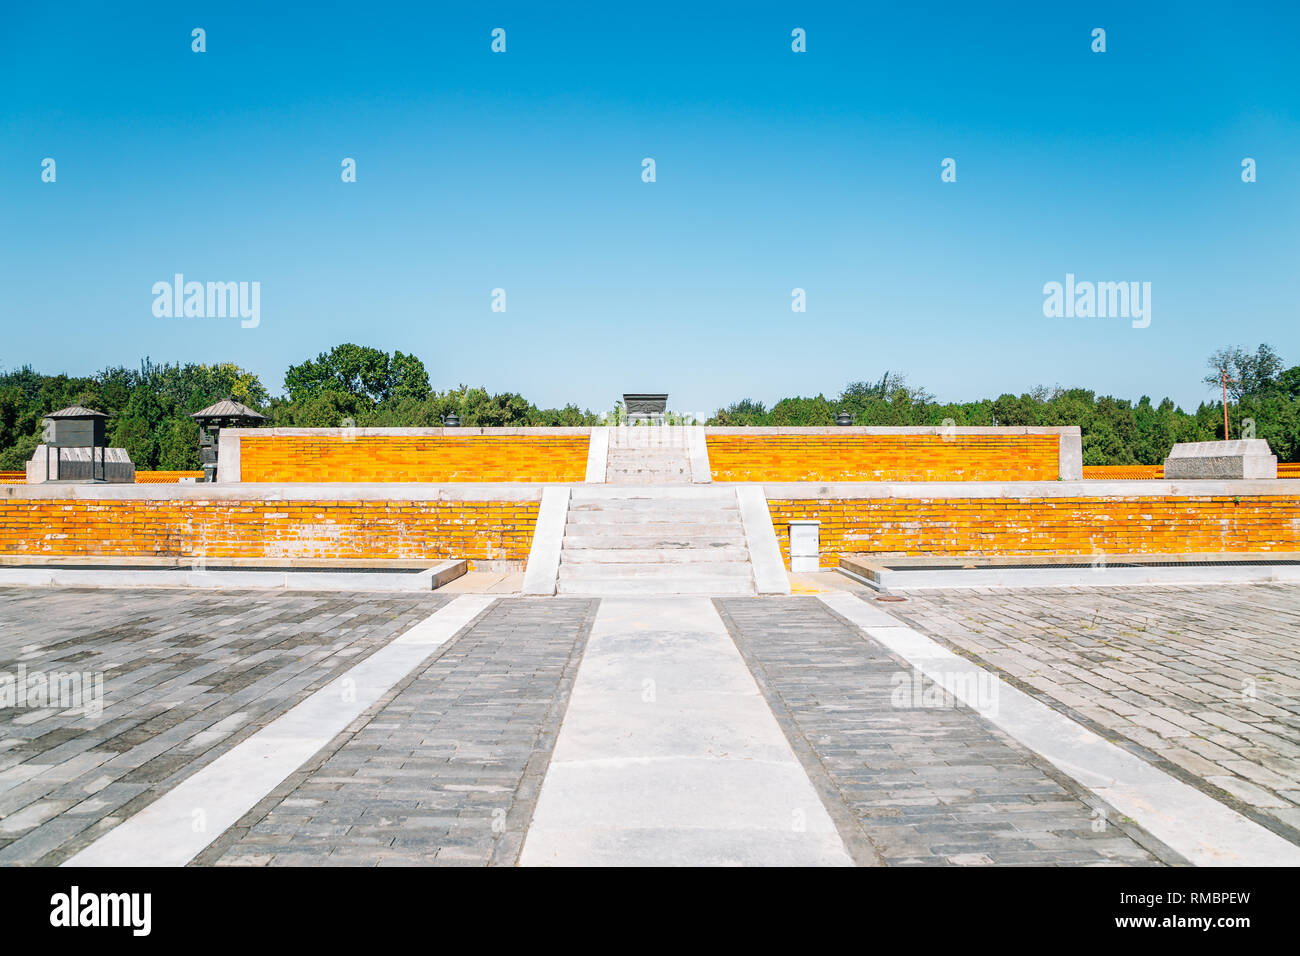 Temple of Earth, Ditan Park in Beijing, China - Stock Image